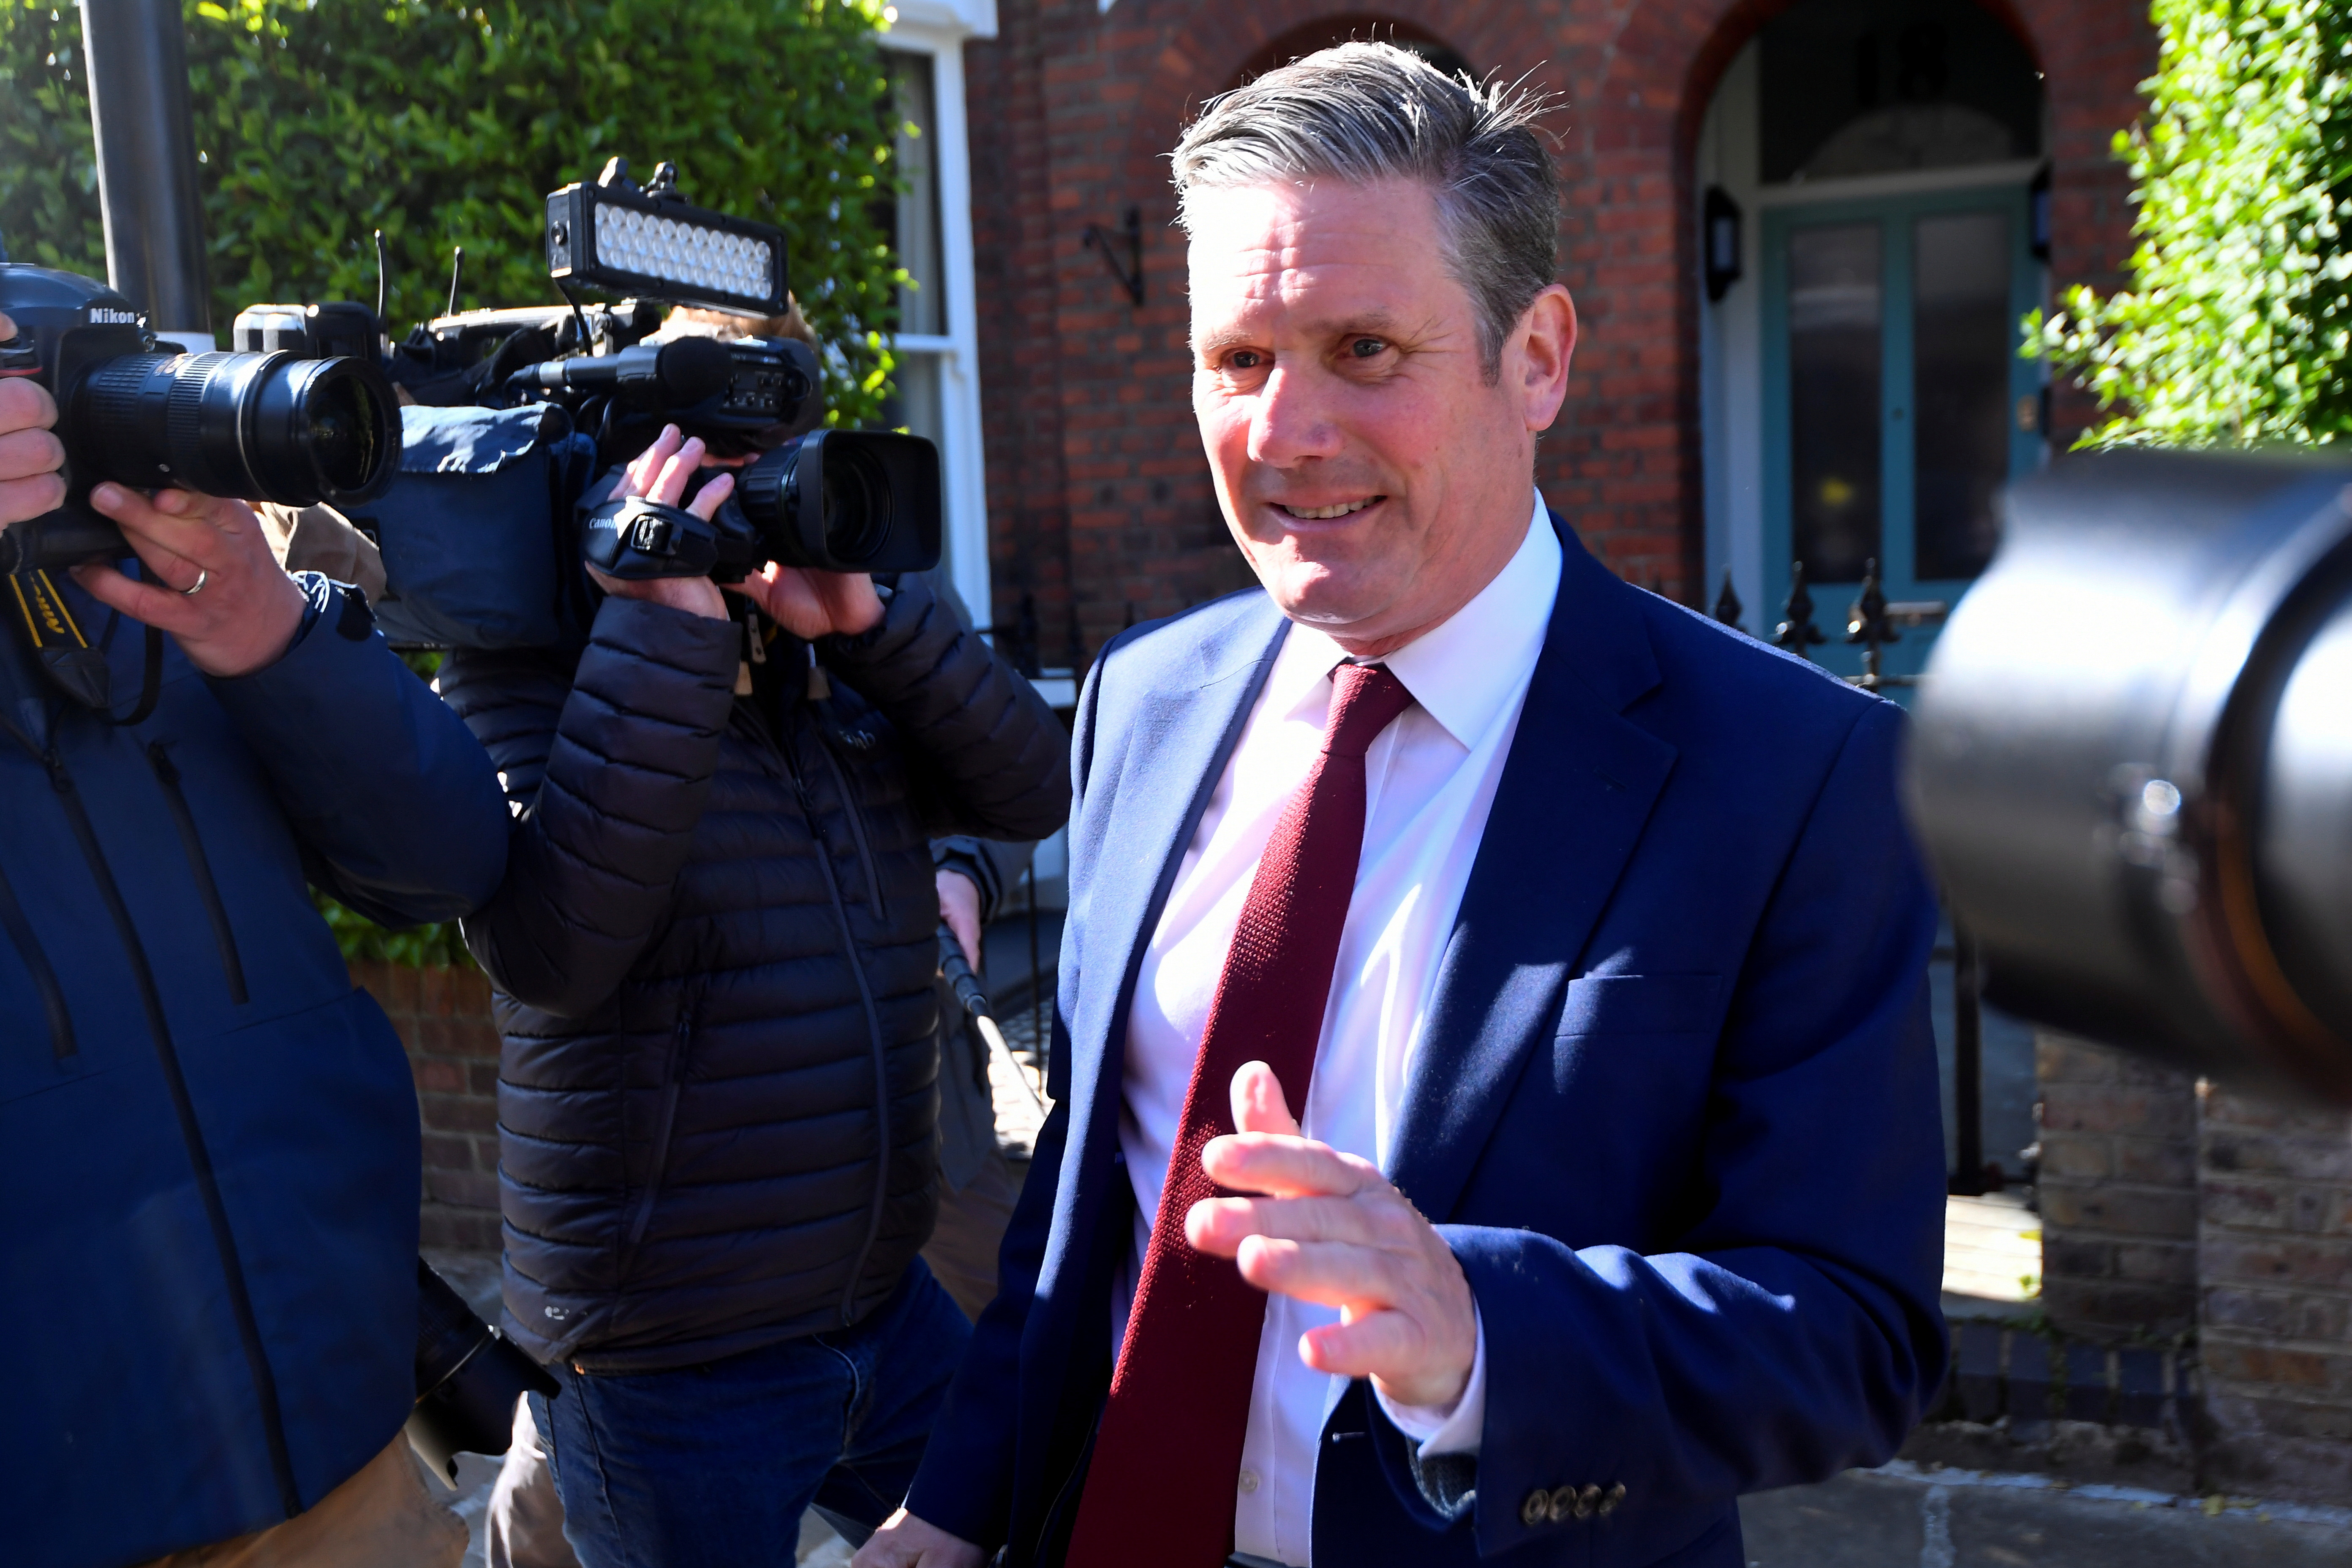 Britain's Labour Party leader Keir Starmer leaves his home after local elections in London, Britain May 7, 2021. REUTERS/Toby Melville/File Photo